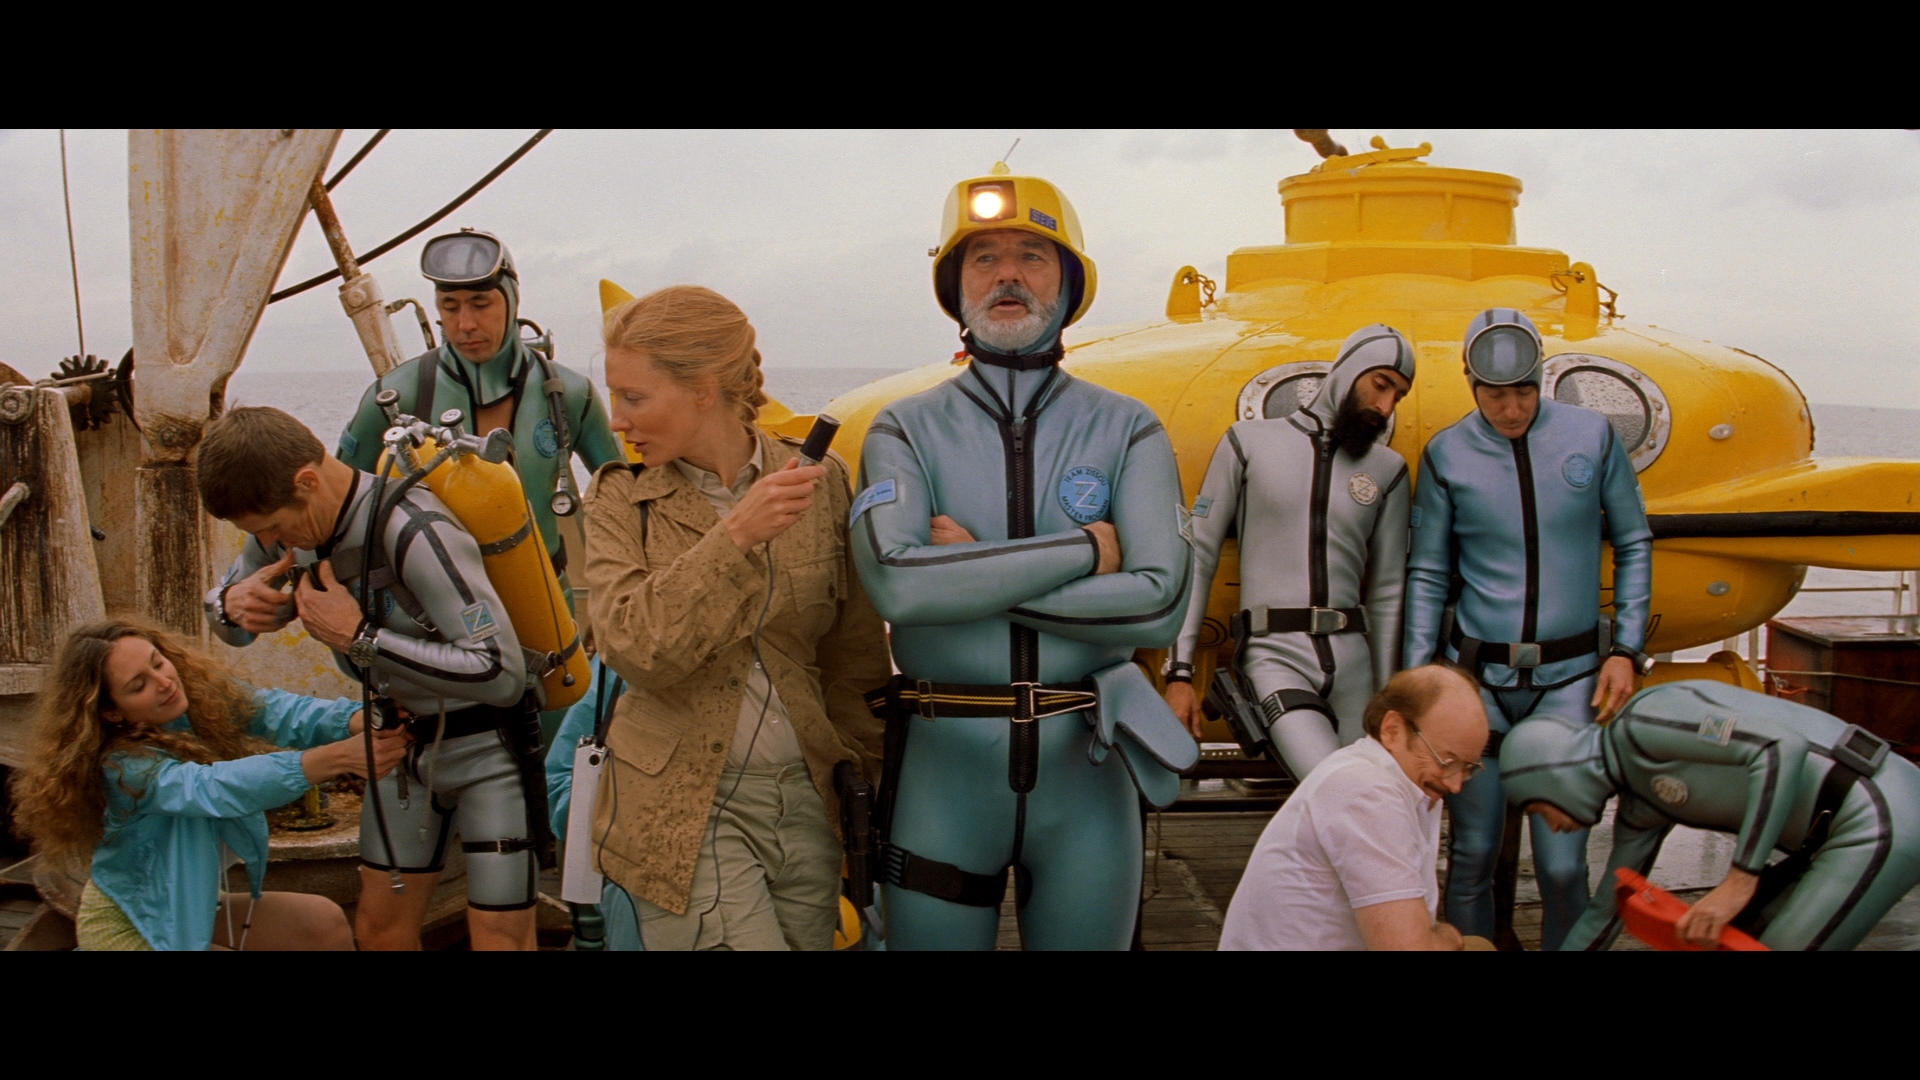 https://i0.wp.com/www.dvdbeaver.com/film4/blu-ray_reviews_61/the_life_aquatic_with_steve_zissou_blu-ray_/large/large_life_aquatic_02_blu-ray_.jpg